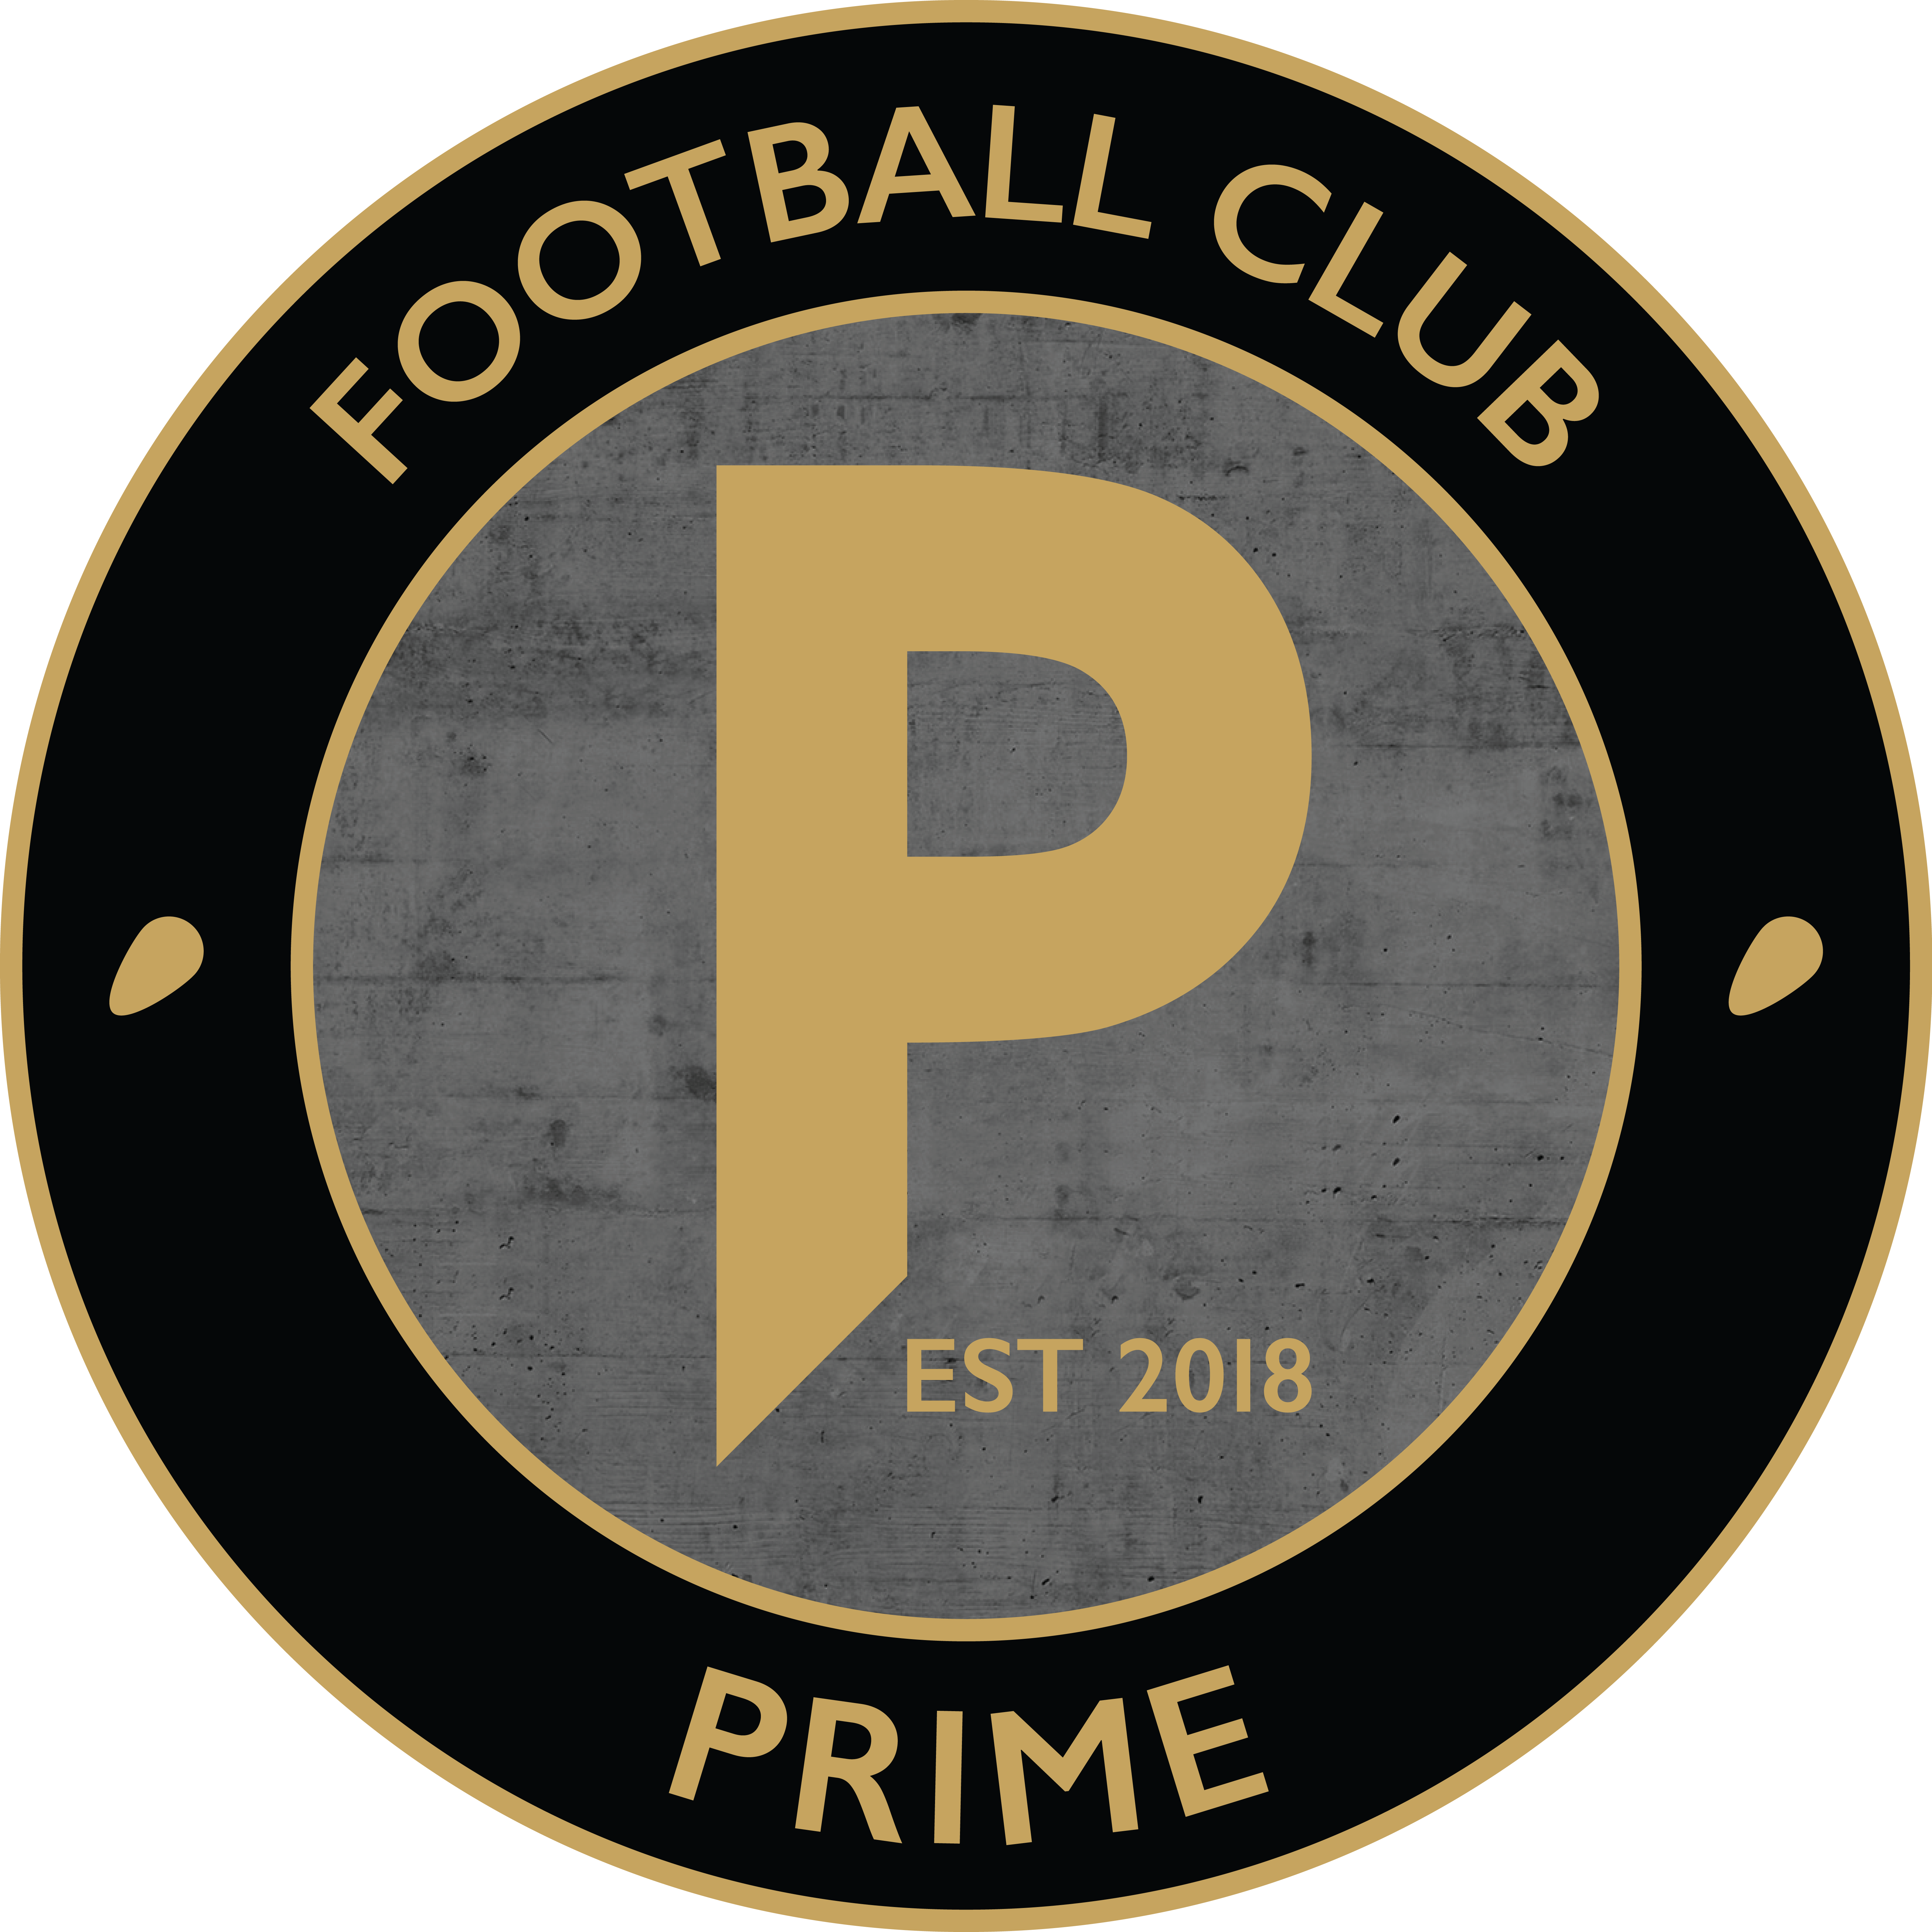 Brevard Soccer Alliance partners with FC Prime